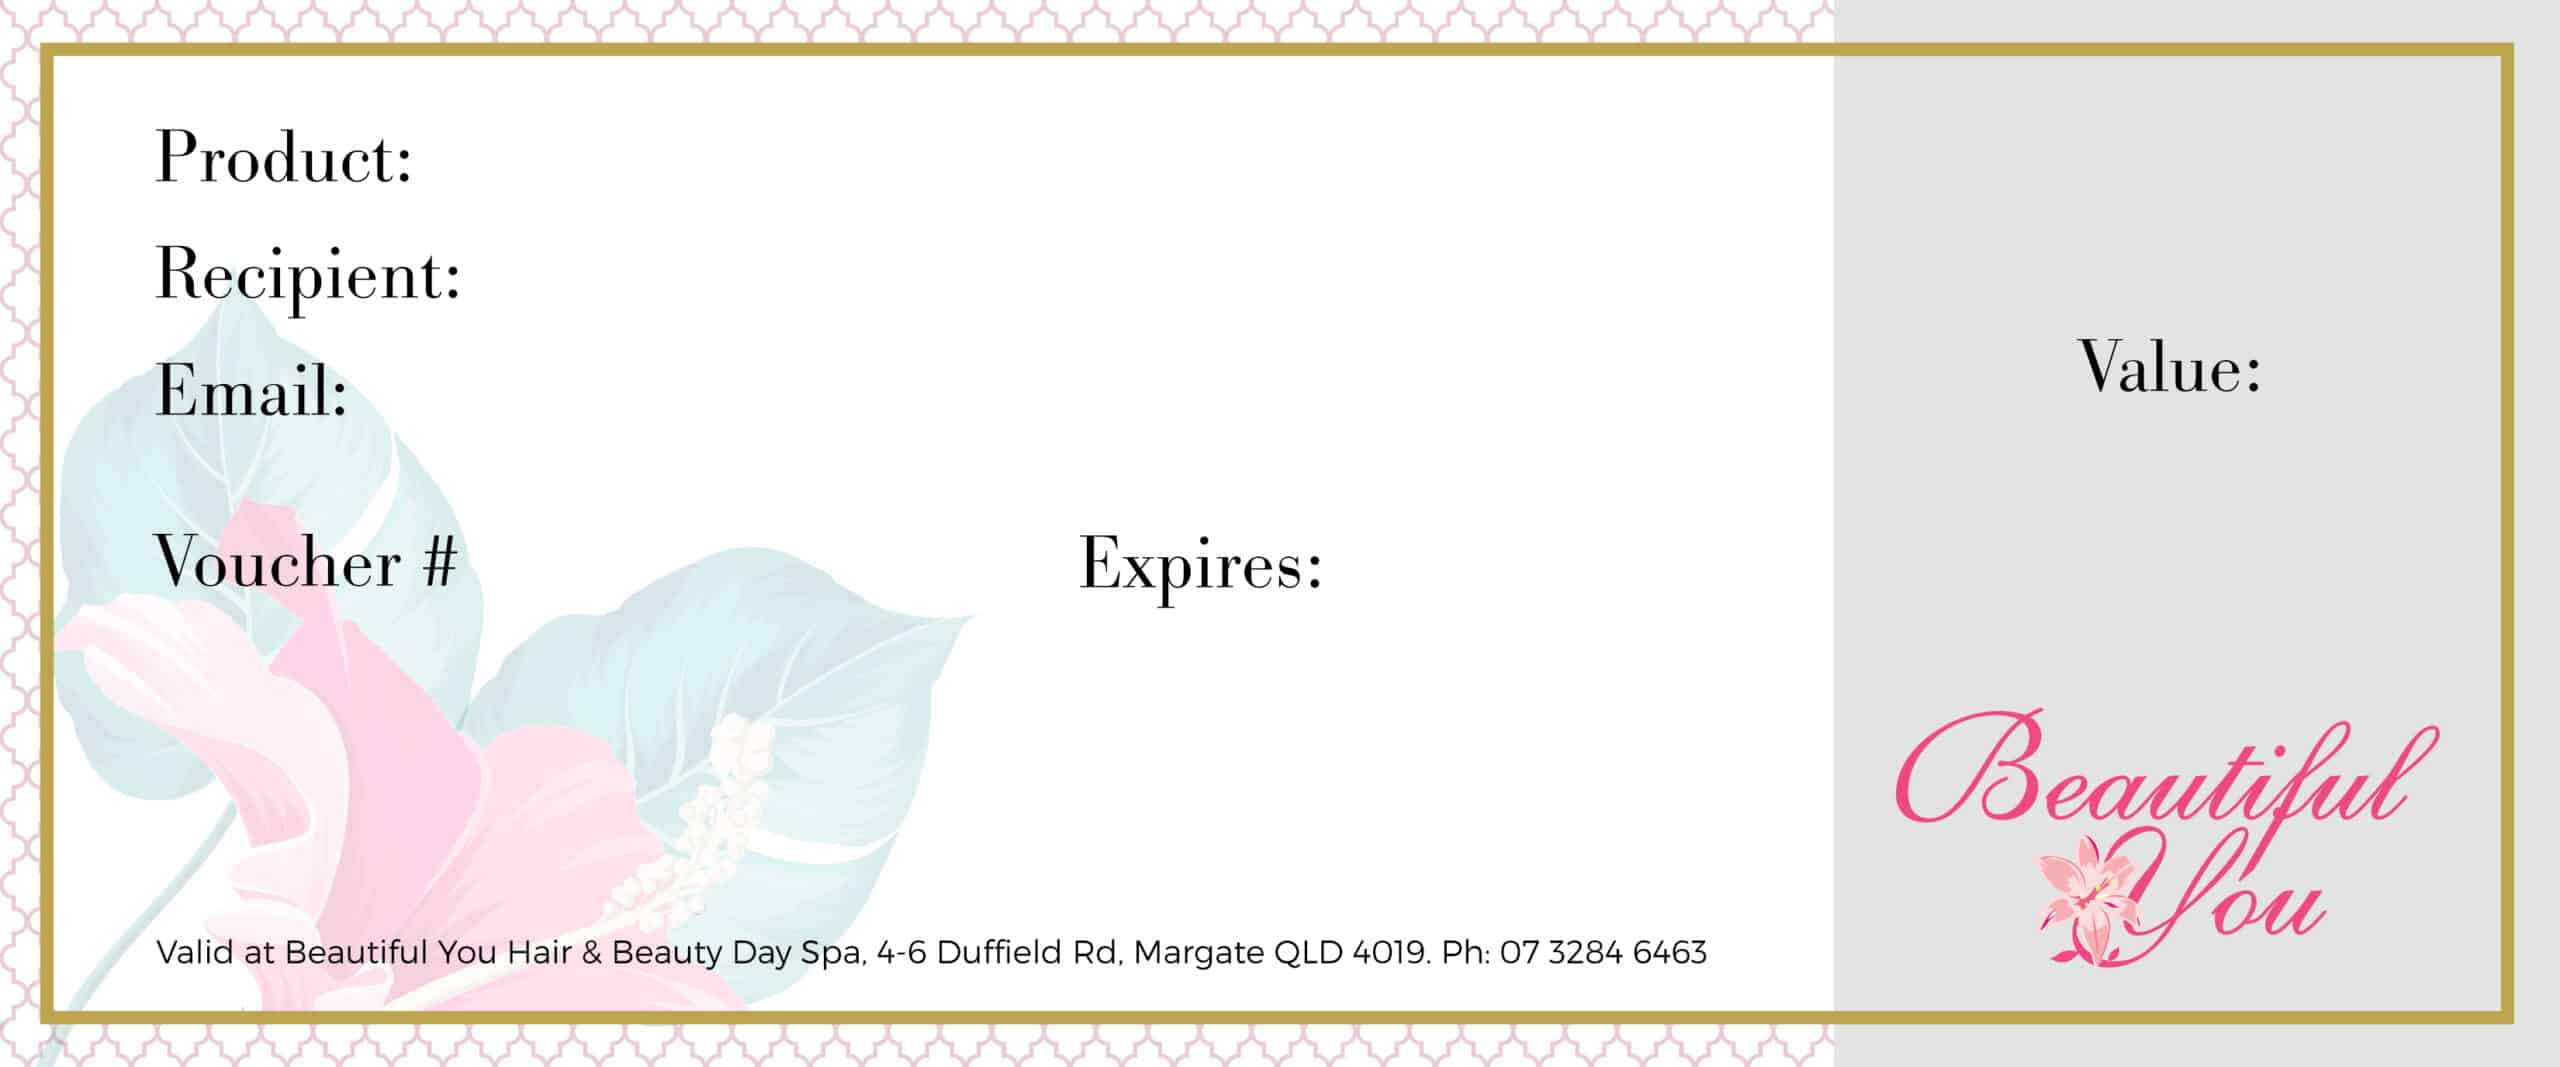 Beautiful You Spa Vouchers Gift For Someone Special Voucher My Salon Image